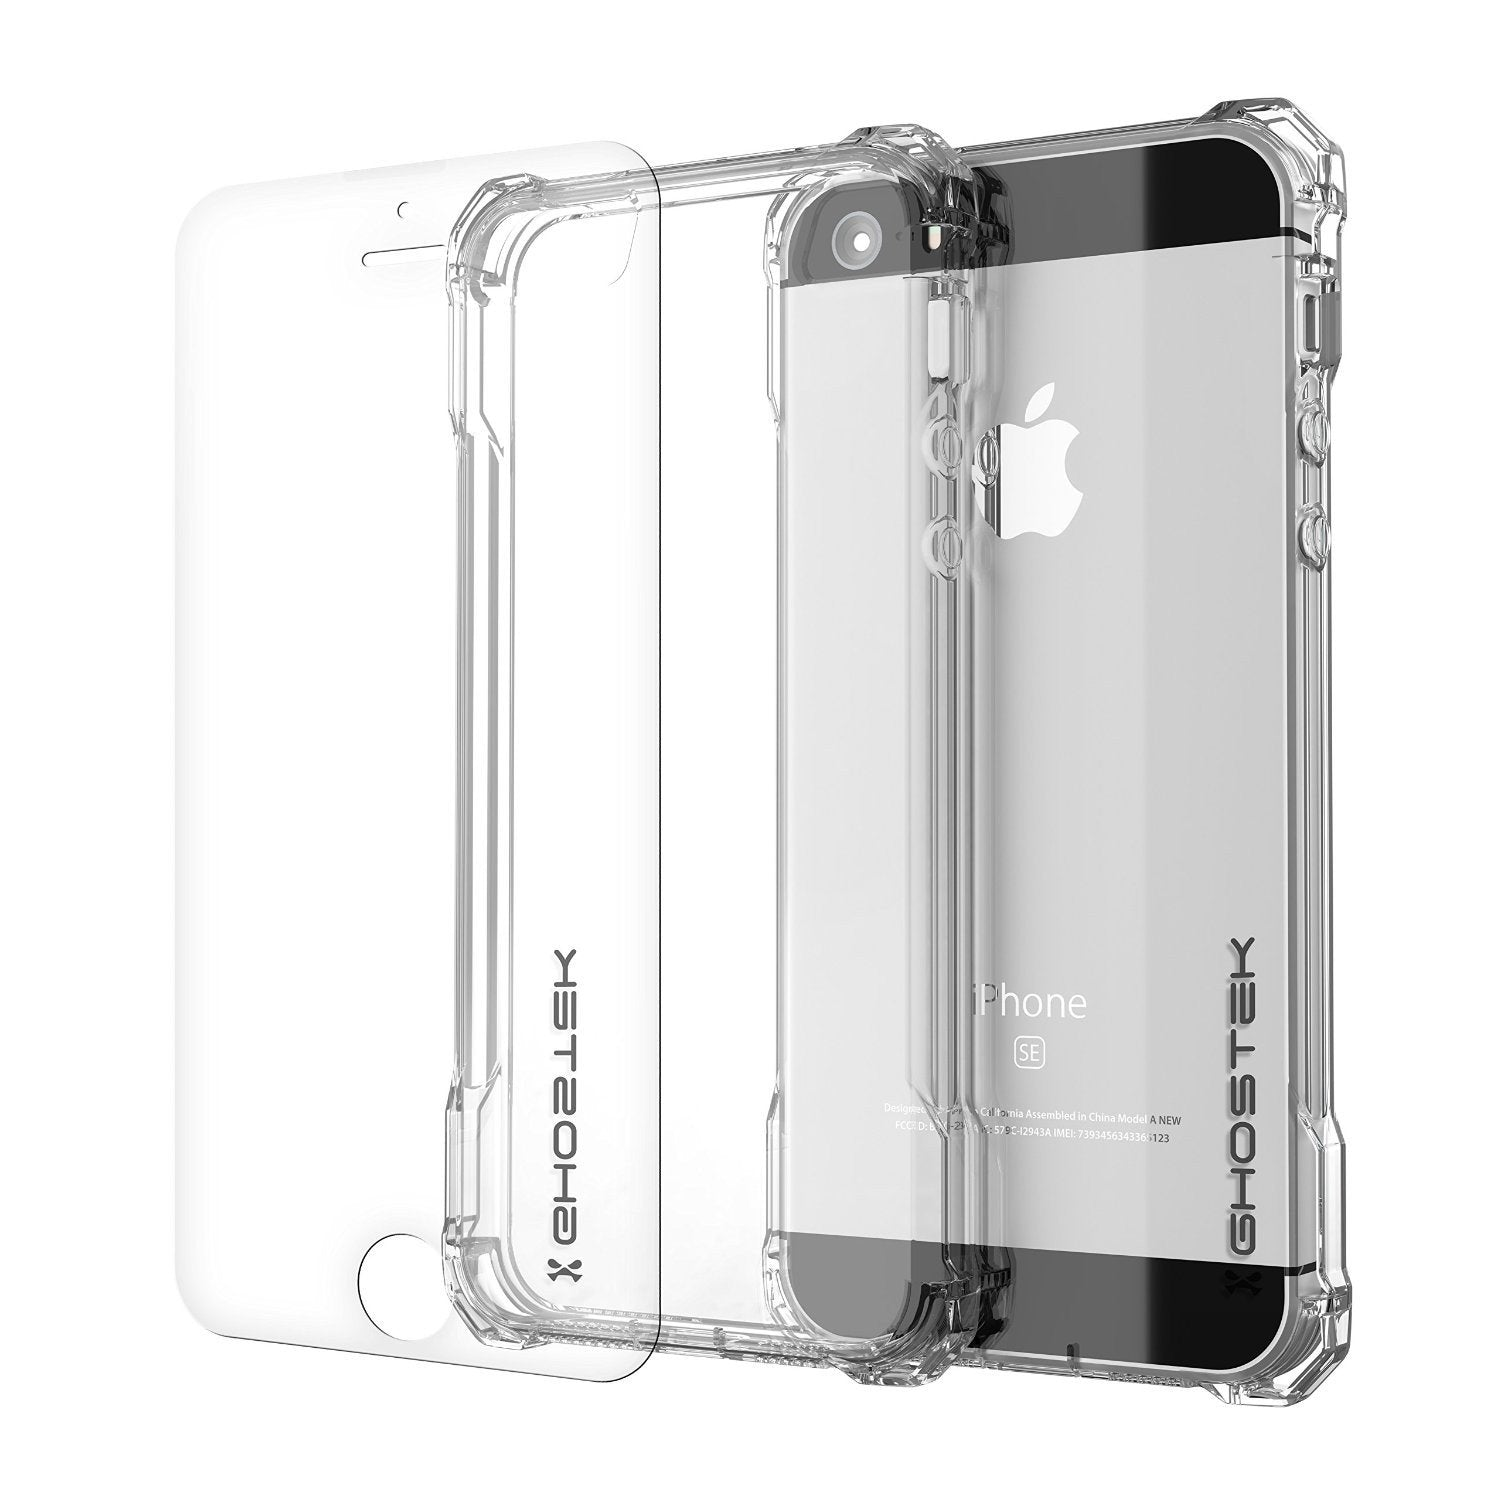 iPhone SE Case Ghostek® Covert Clear, Premium Impact Protective Armor | Lifetime Warranty Exchange - PunkCase NZ